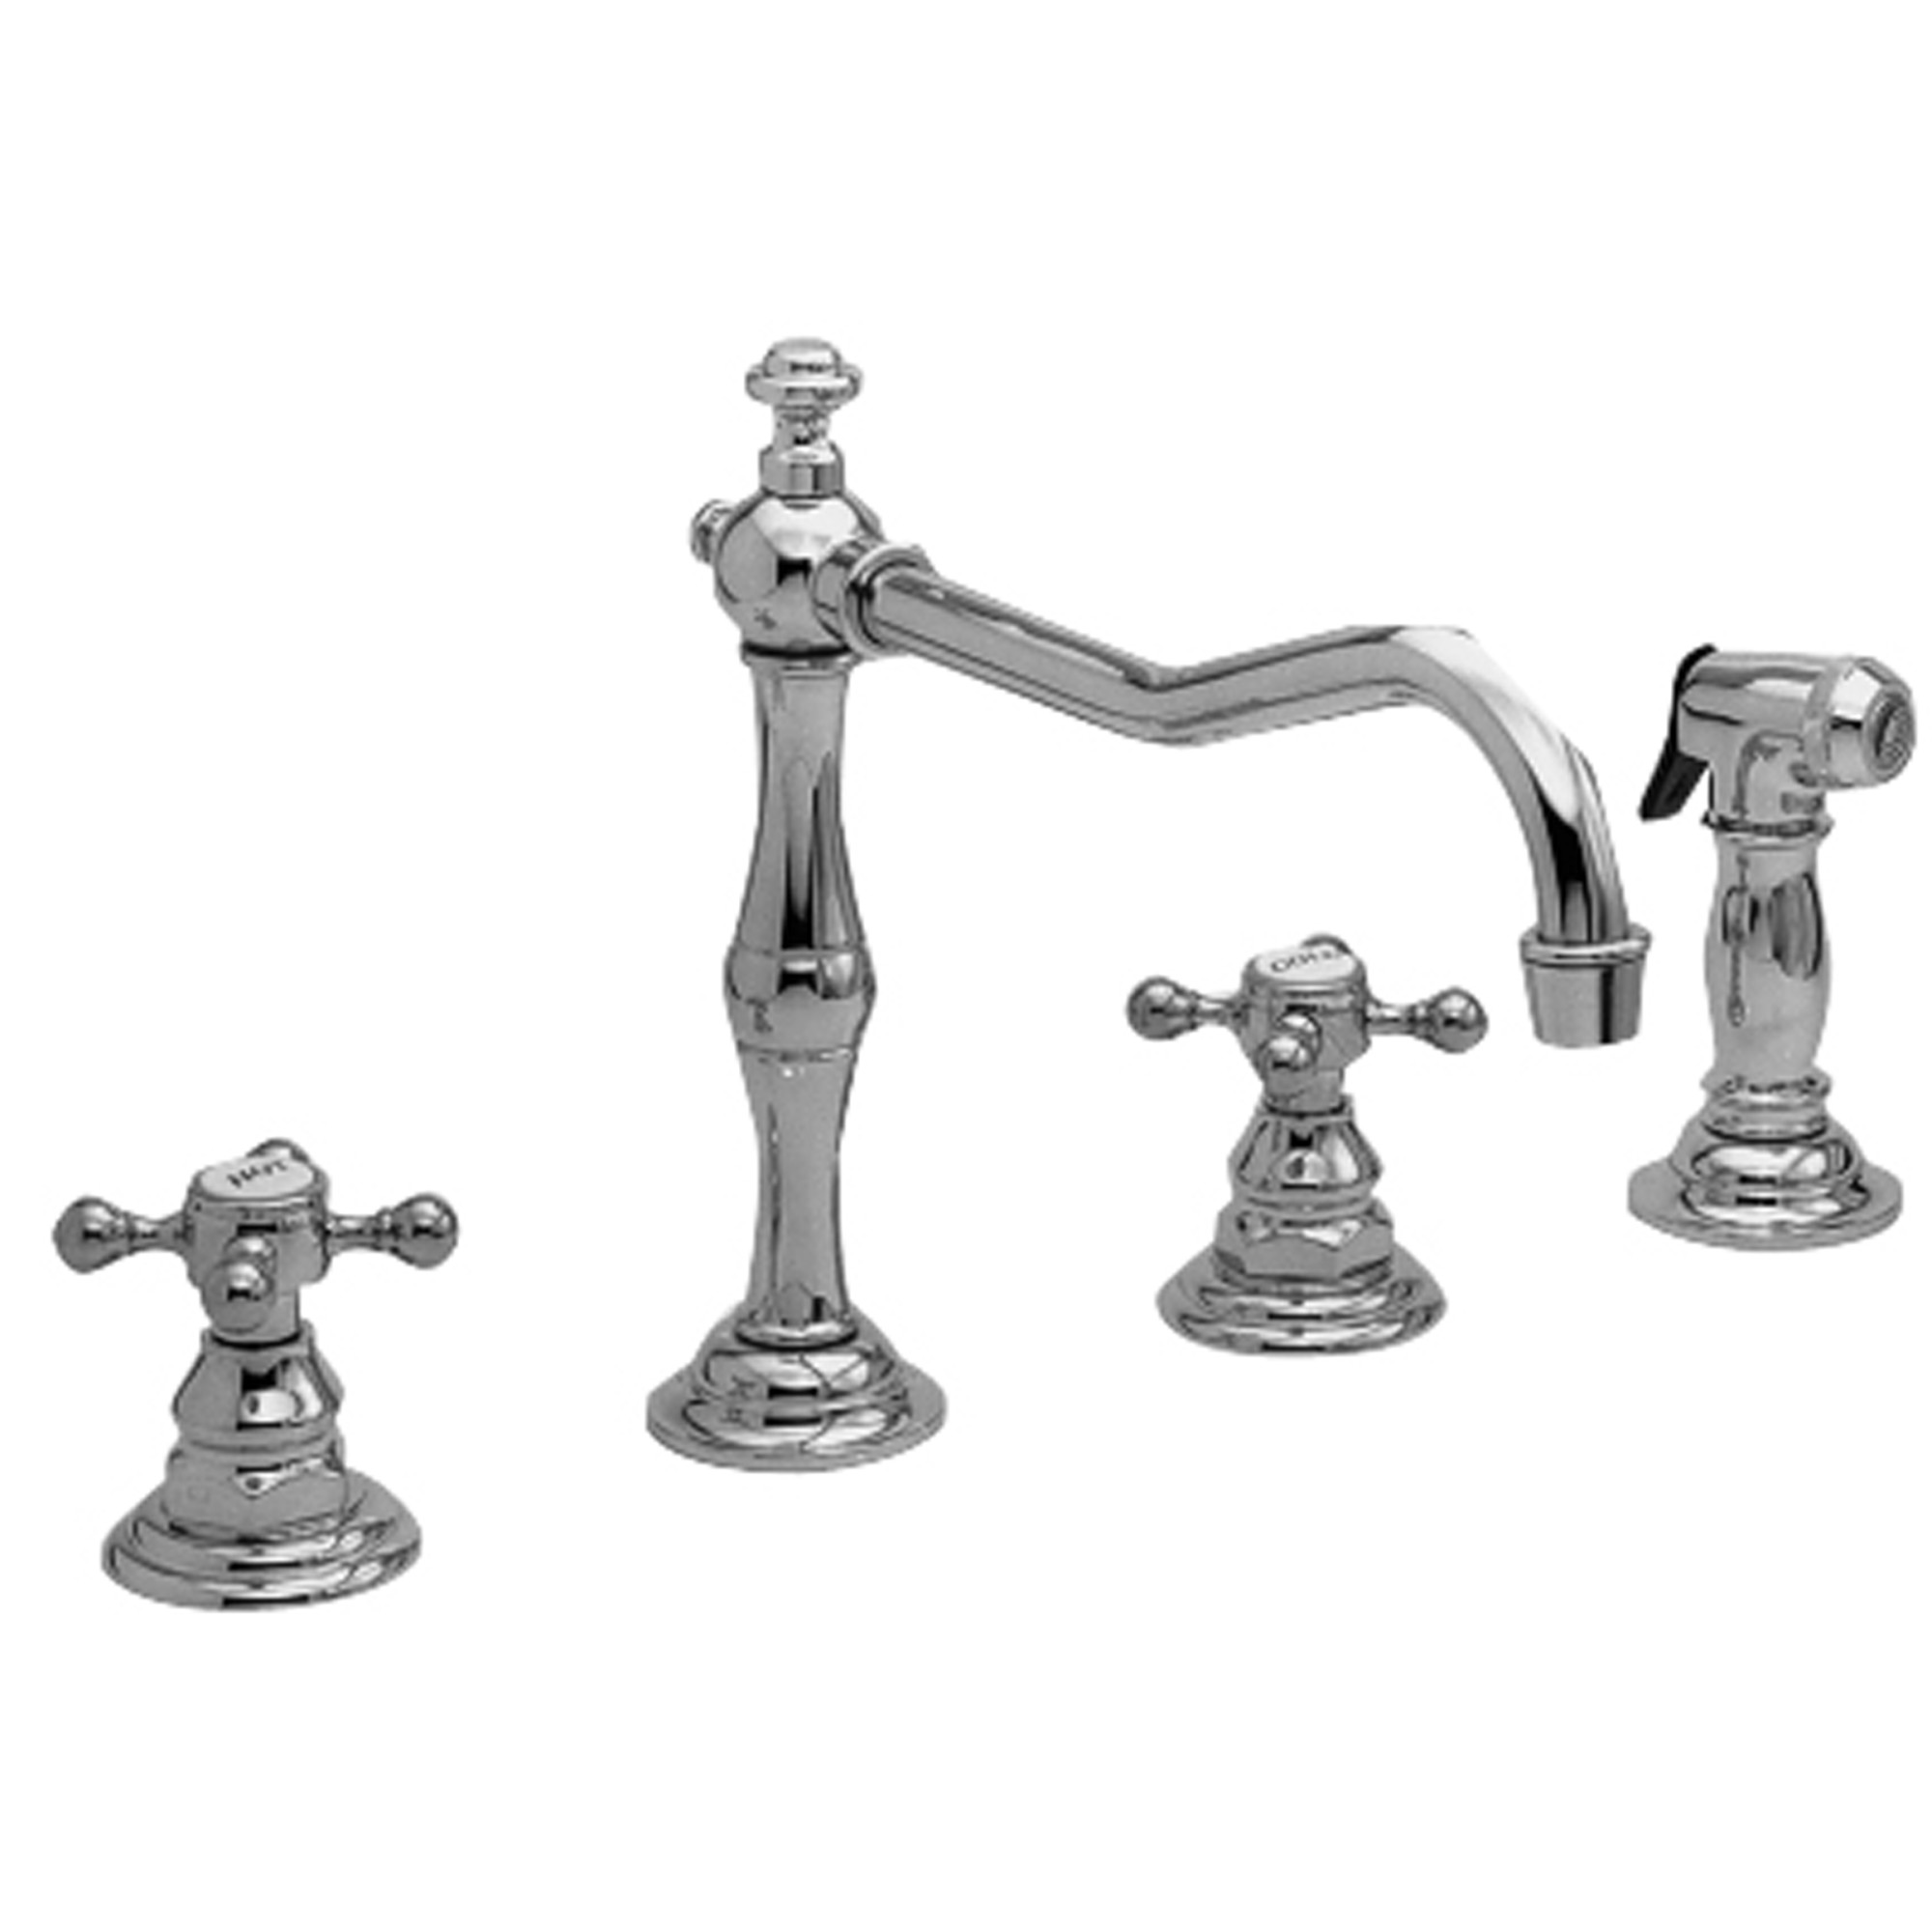 Newport Brass 943 Chesterfield Double Handle Widespread Kitchen Faucet Walmart Com Walmart Com